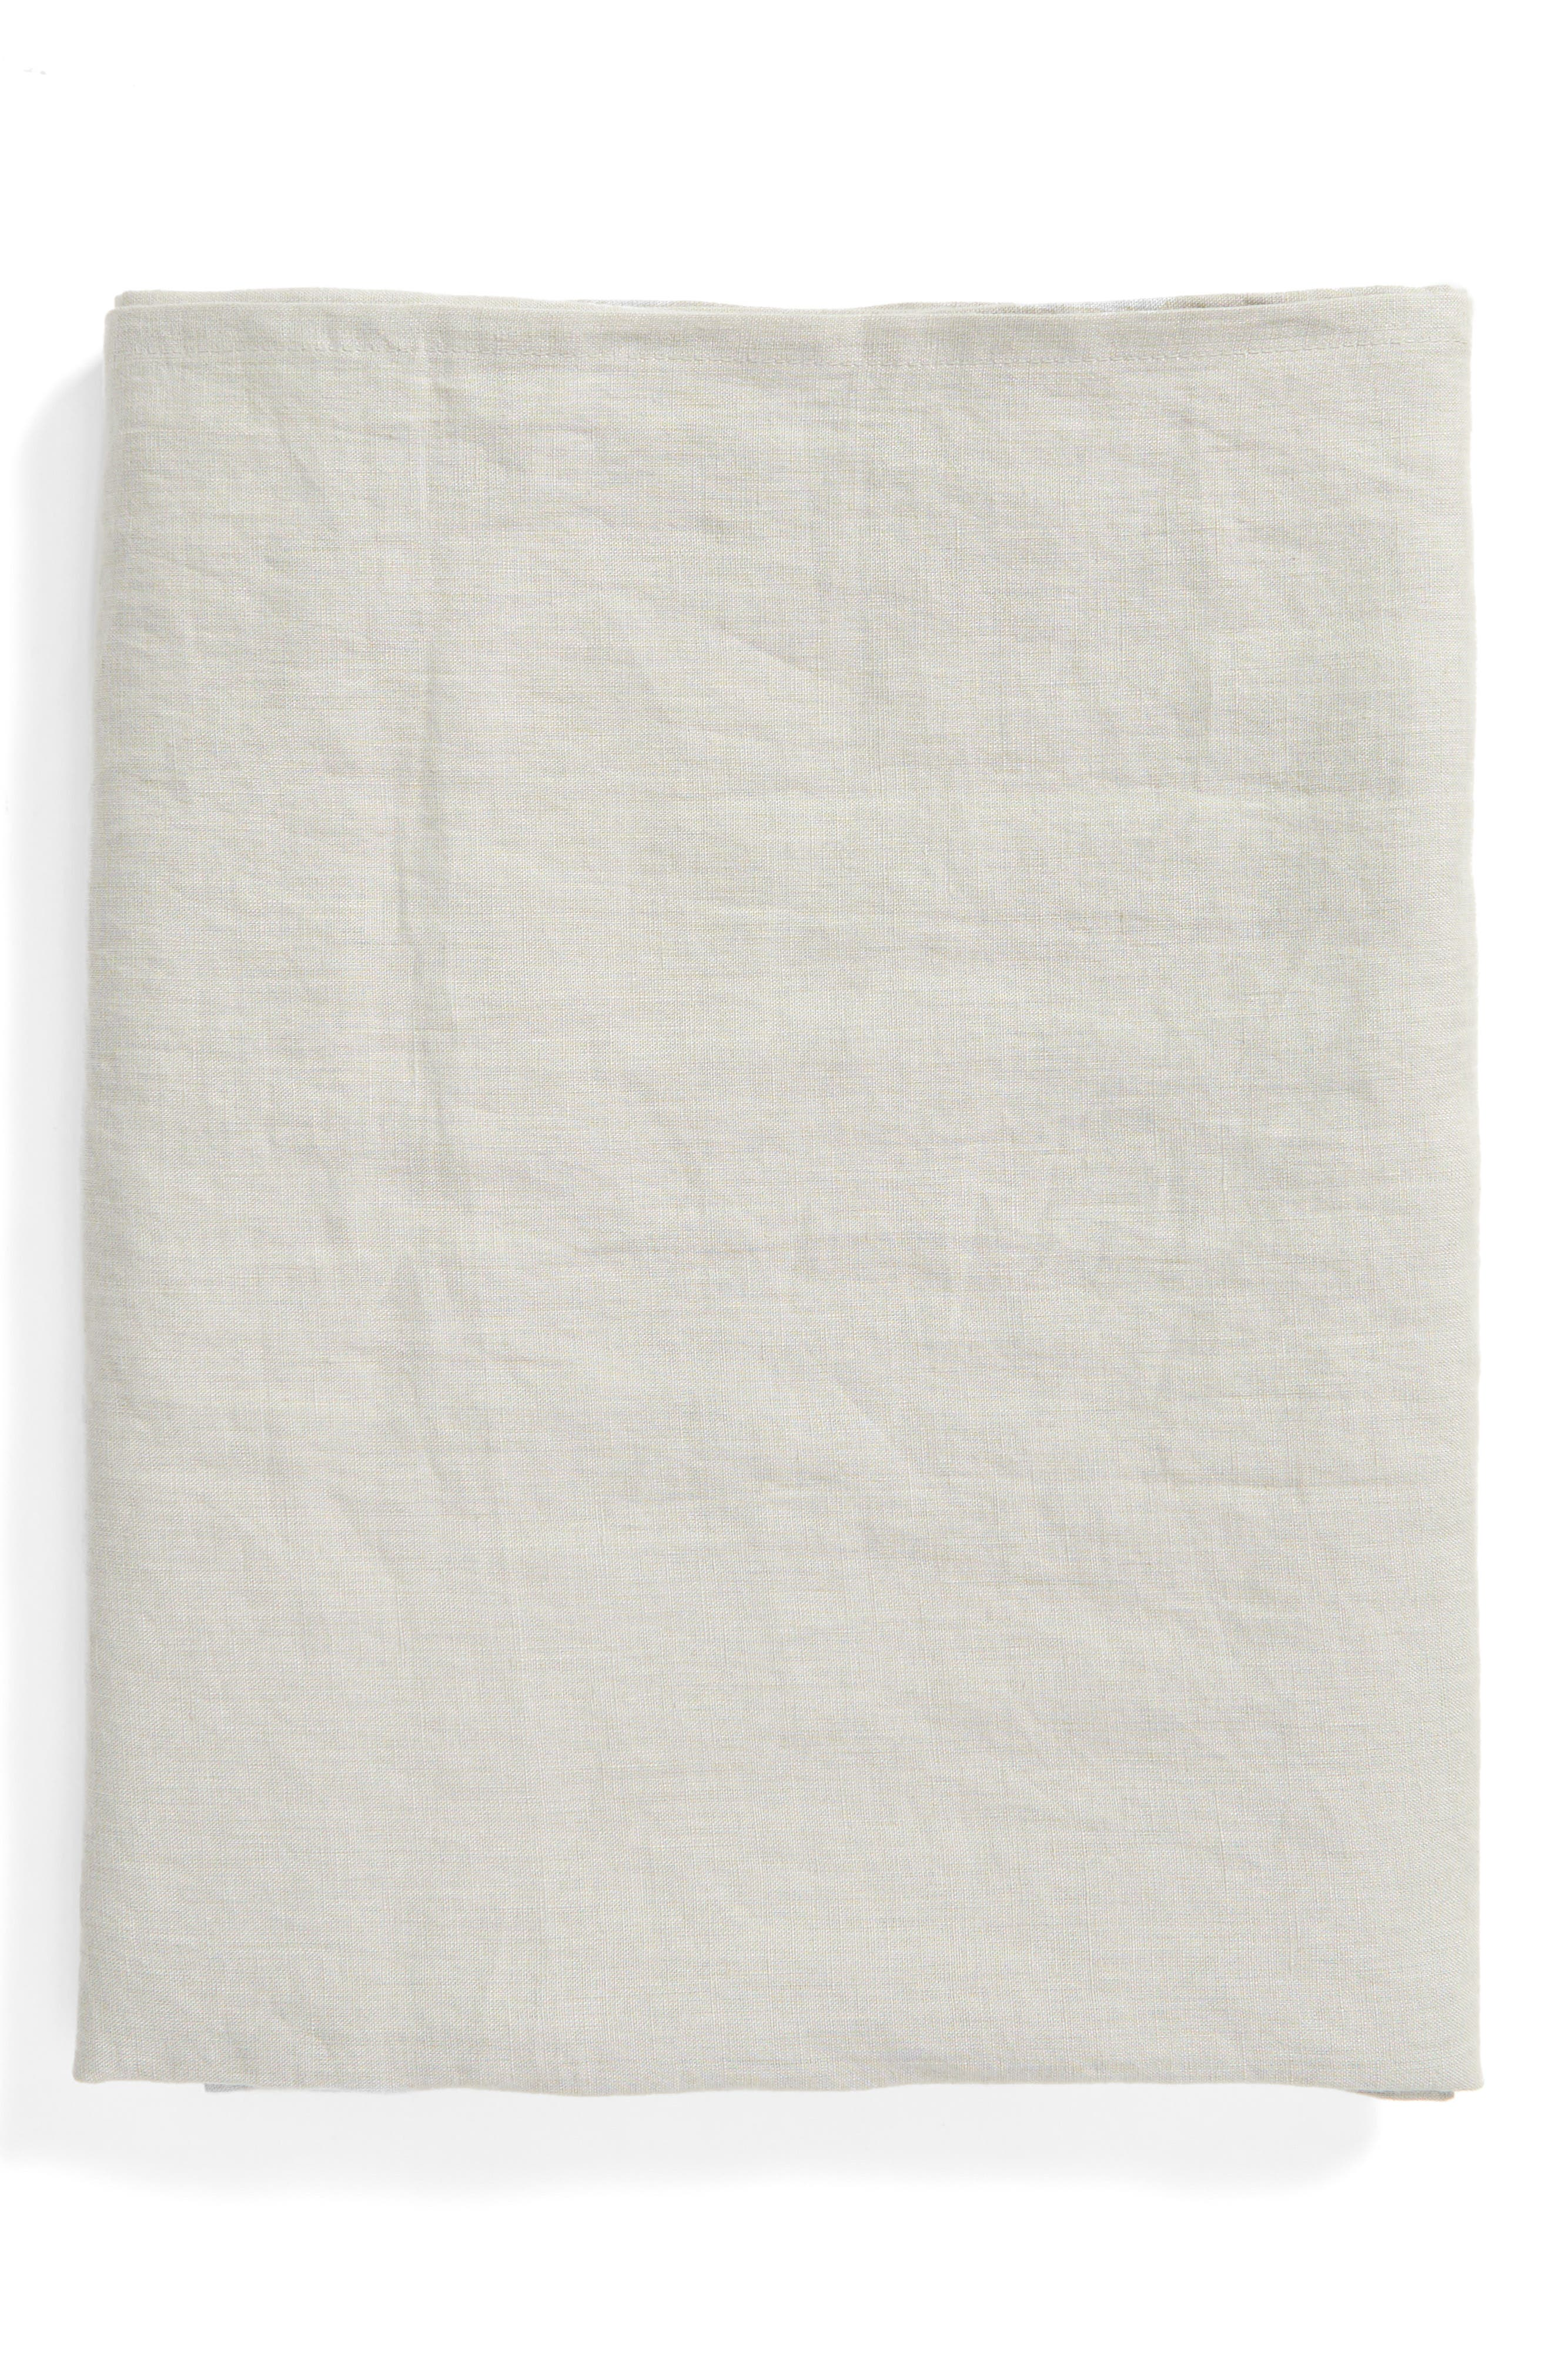 Alternate Image 1 Selected - Levtex Washed Linen Tablecloth